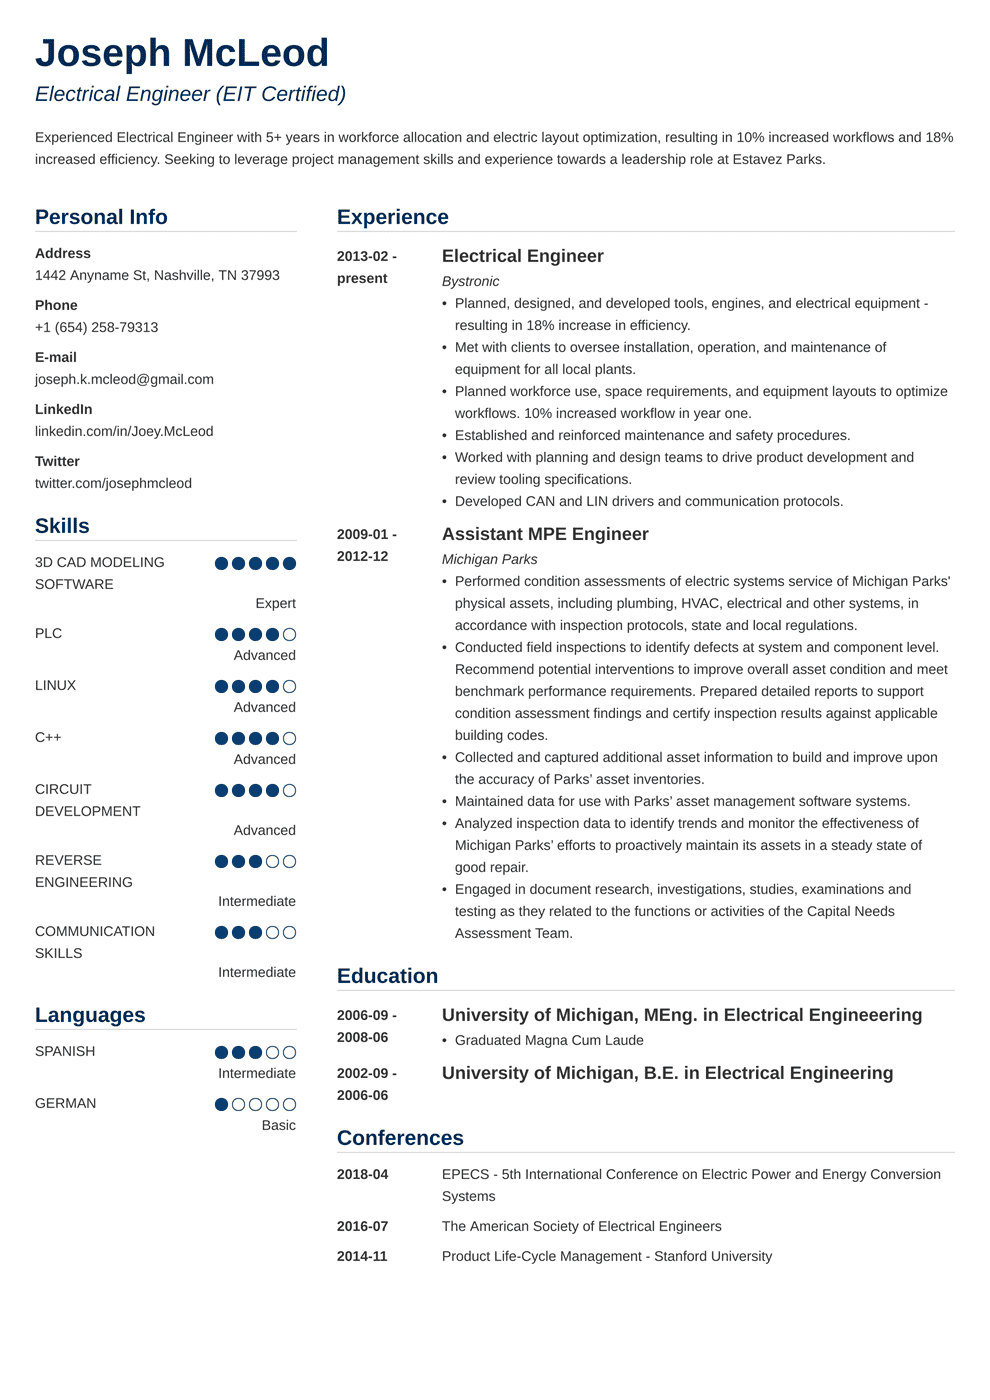 Electrical Engineering Resume: Sample & Writing Guide (20+ ...